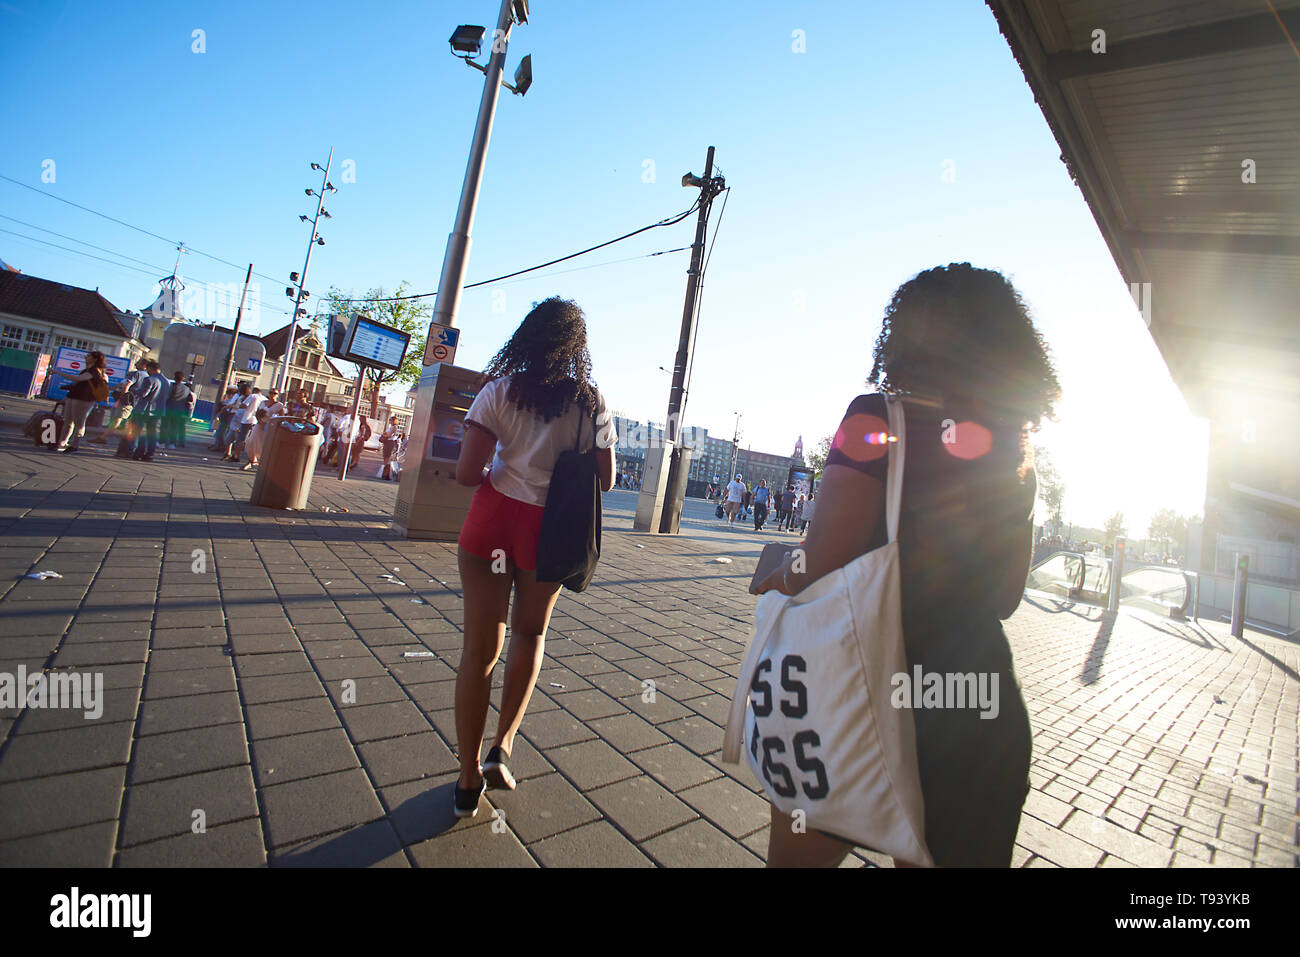 Two African women arriving at Amsterdam central statiion and walking down the square towards the city centre in spring sunhine - Stock Image